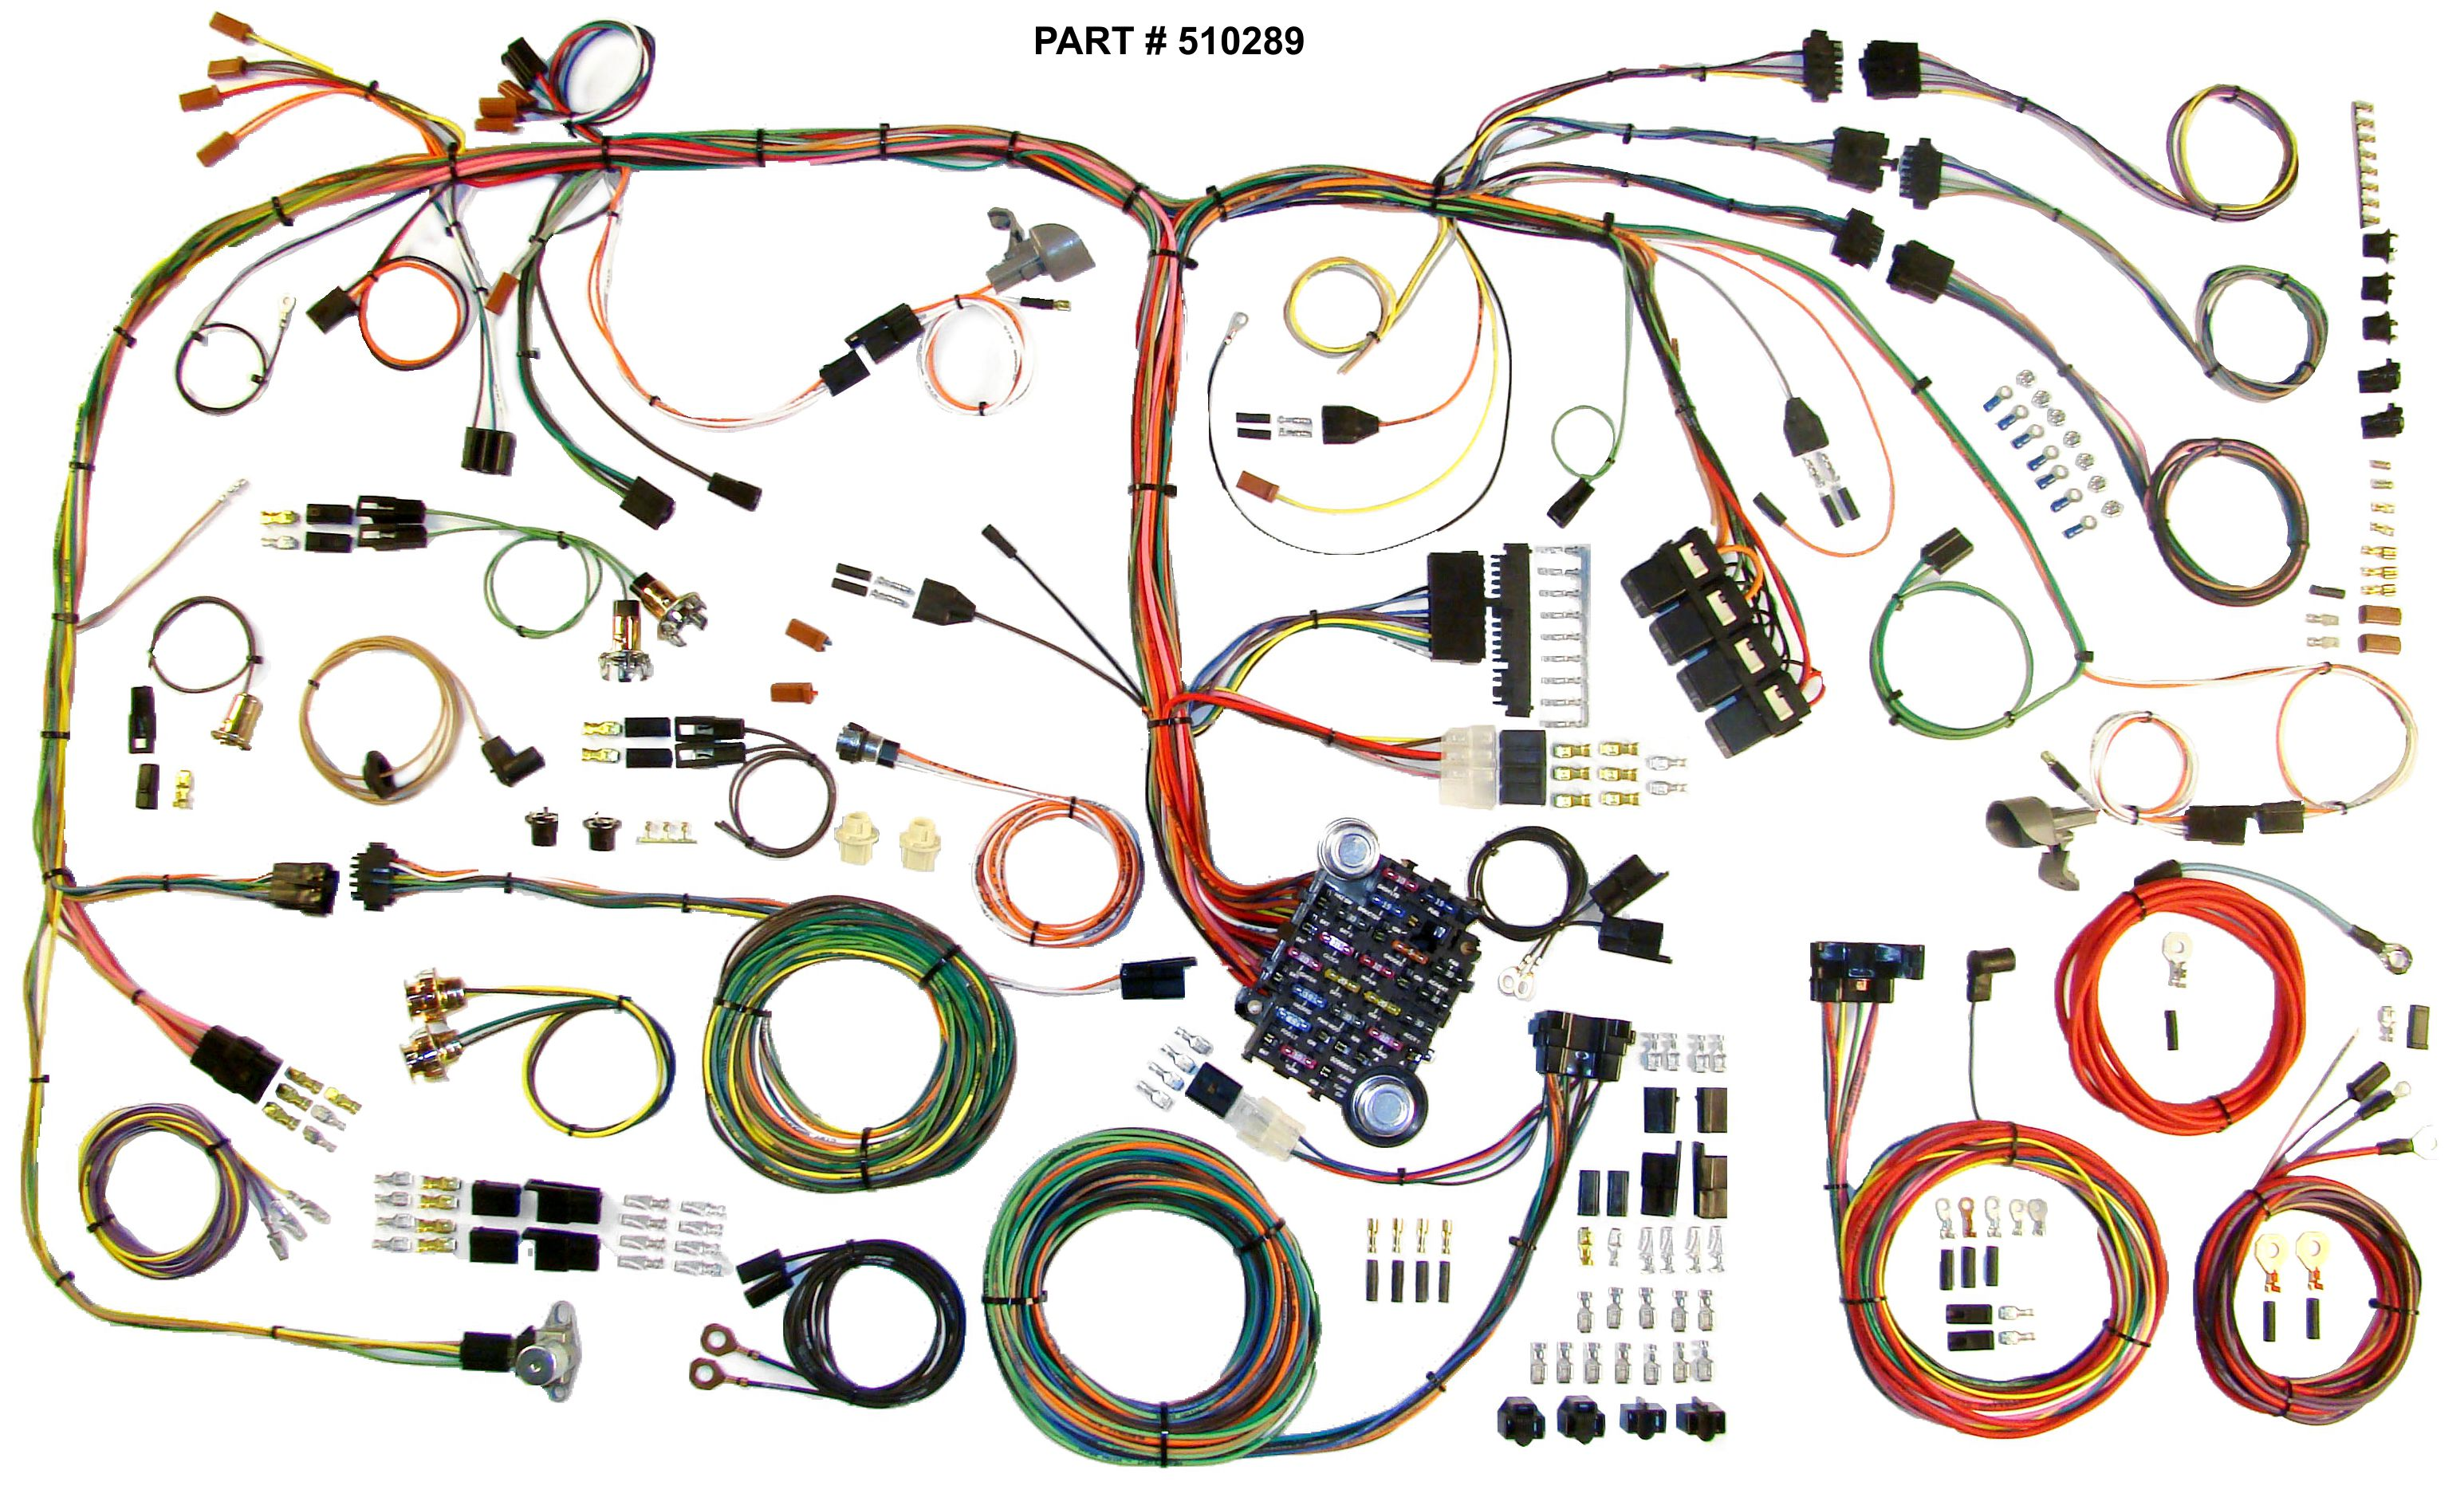 1970 1974 plymouth barracuda & dodge challenger restomod wiring system 1973 dodge challenger r t 1970 74 chrysler barracuda challenger restomod wiring harness system